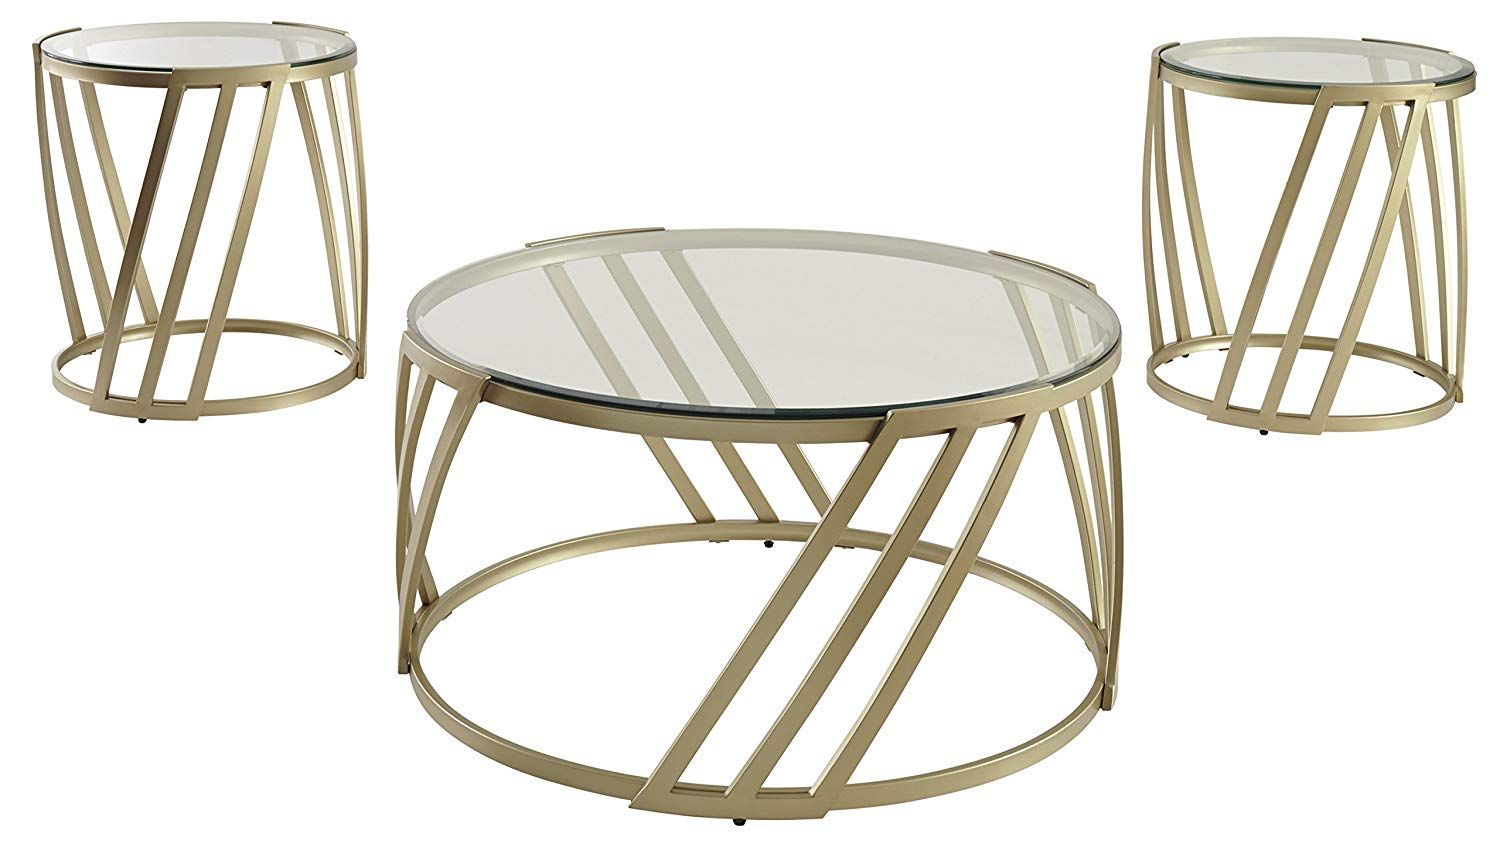 Ashley Furniture Signature Design Austiny Contemporary 3 Piece Table Set Includes Cocktail Table And Two Ashley Furniture Living Room Table Table Settings